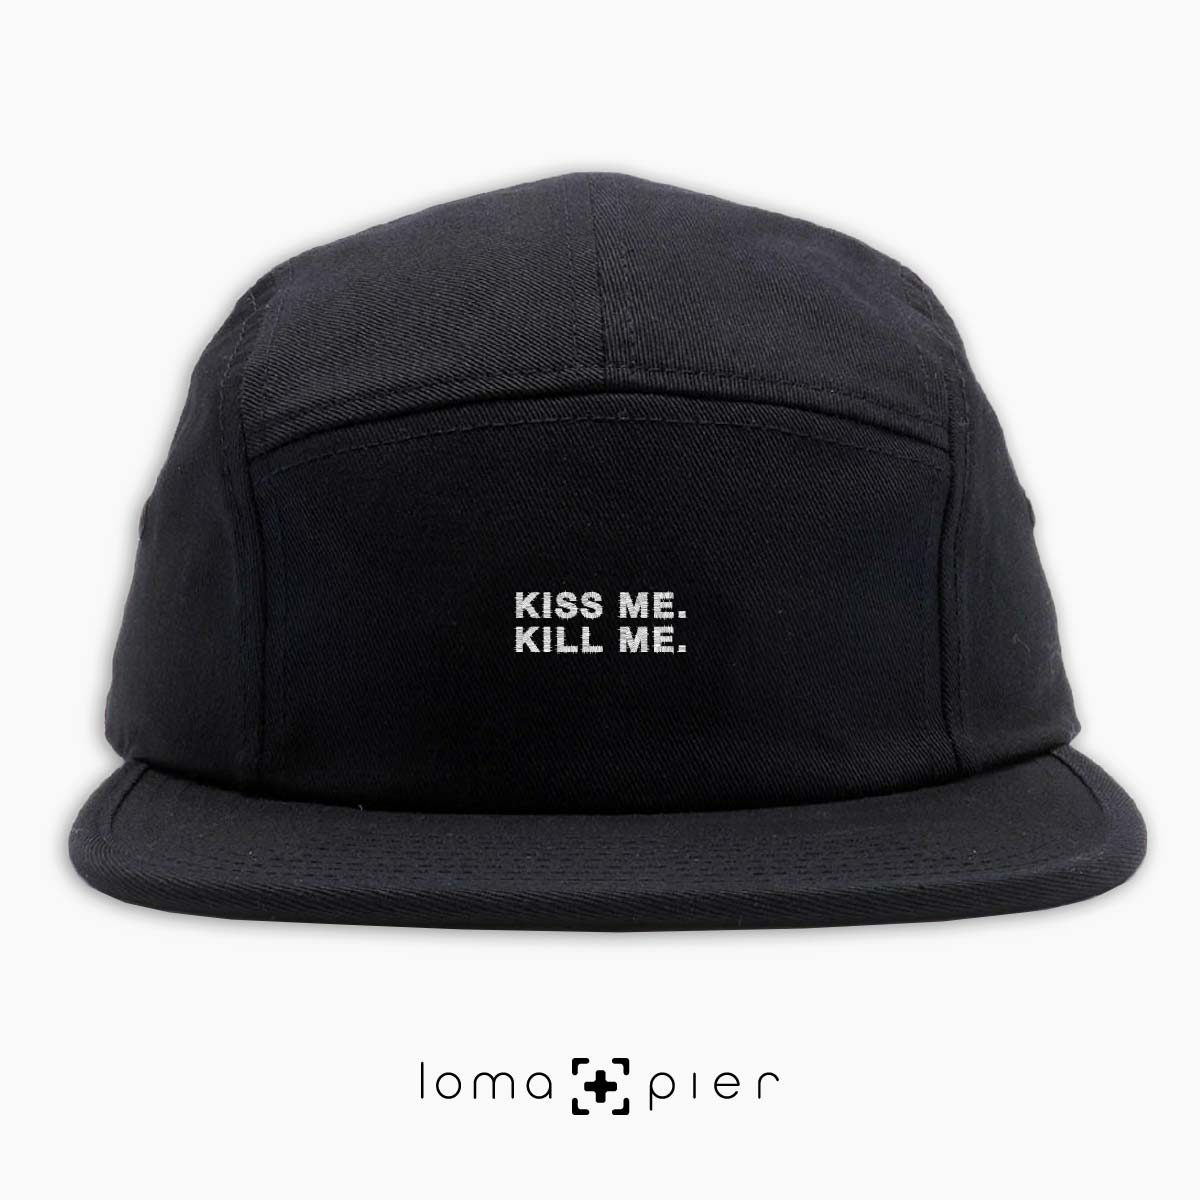 KISS ME. KILL ME. typography embroidered on a black cotton 5-panel hat with white thread by loma+pier hat store